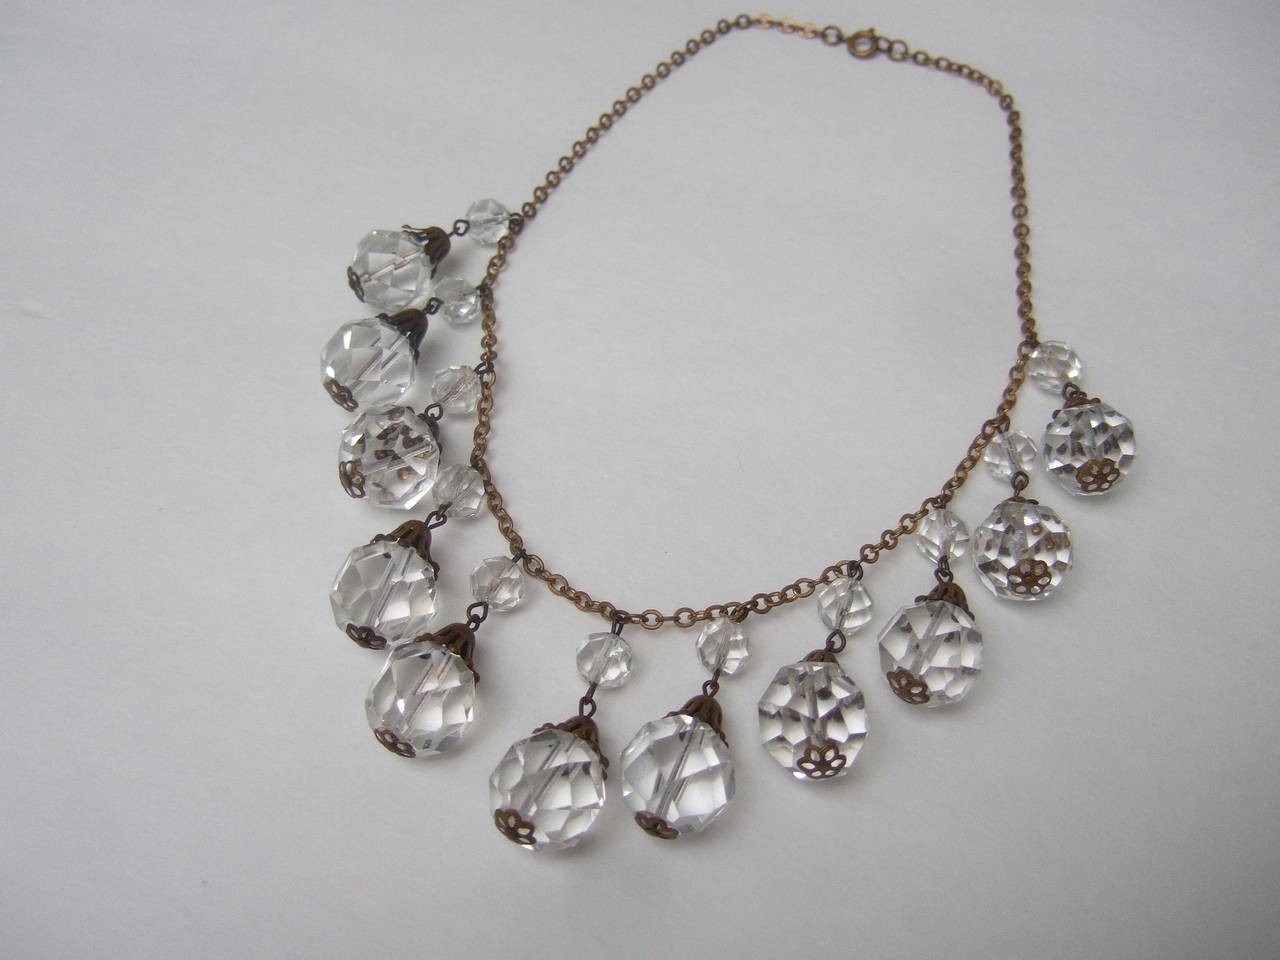 Opulent Art Deco Crystal Drop Necklace c 1940s 7